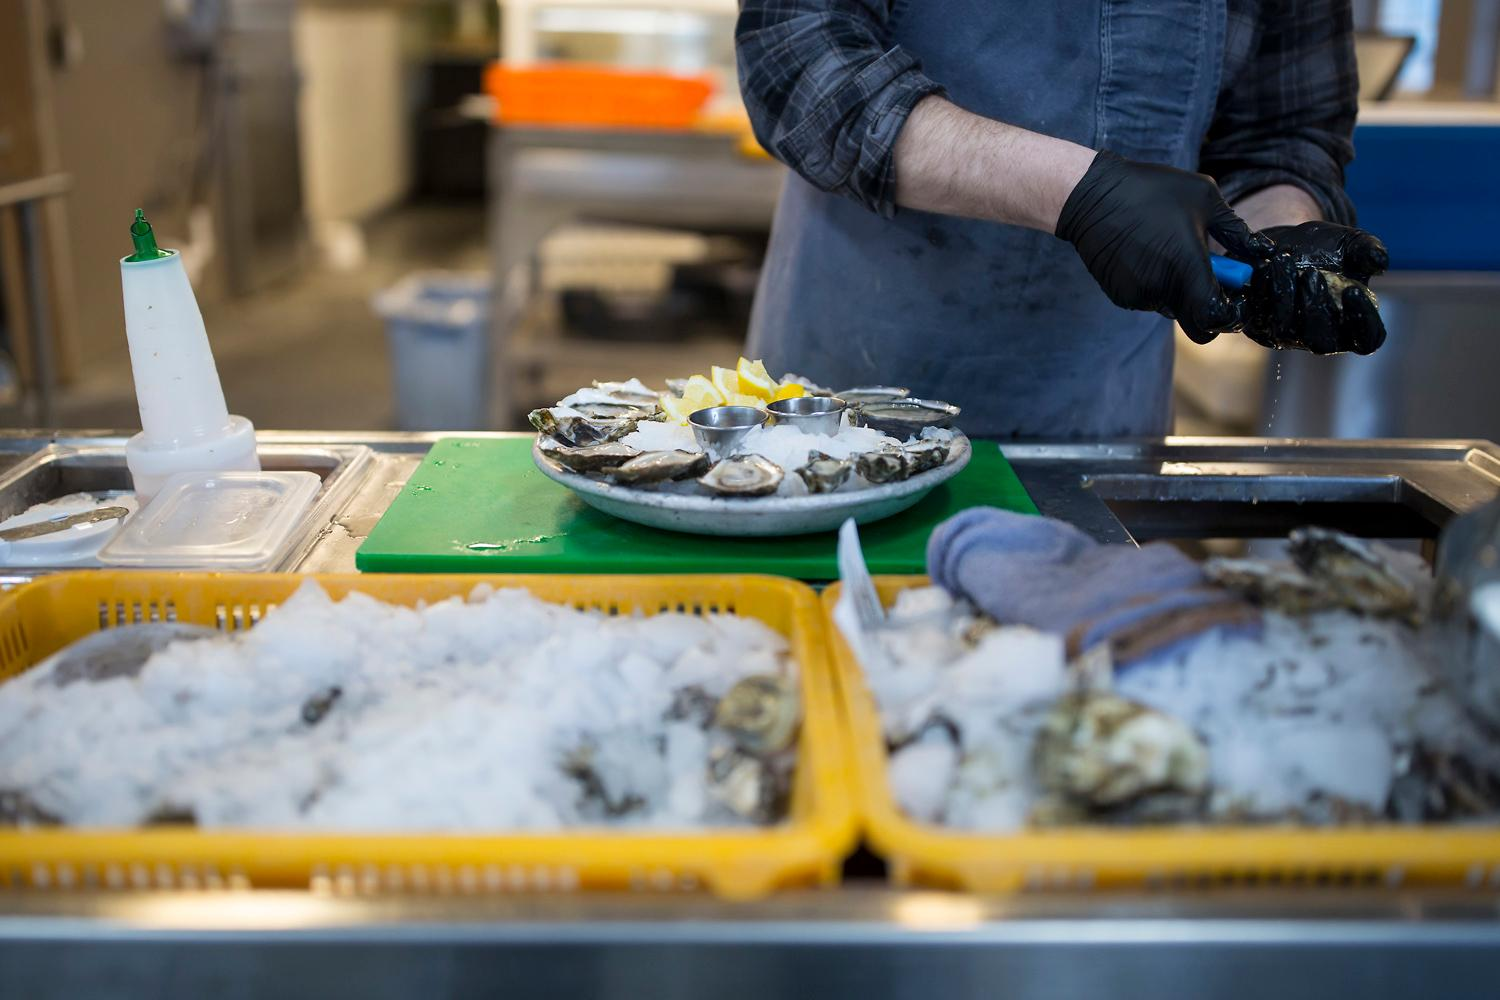 Freshly shucked oysters at Taylor Shellfish's retail shop, located at 2182 Chuckanut Dr, in Bow, Washington. (Sy Bean / Seattle Refined)